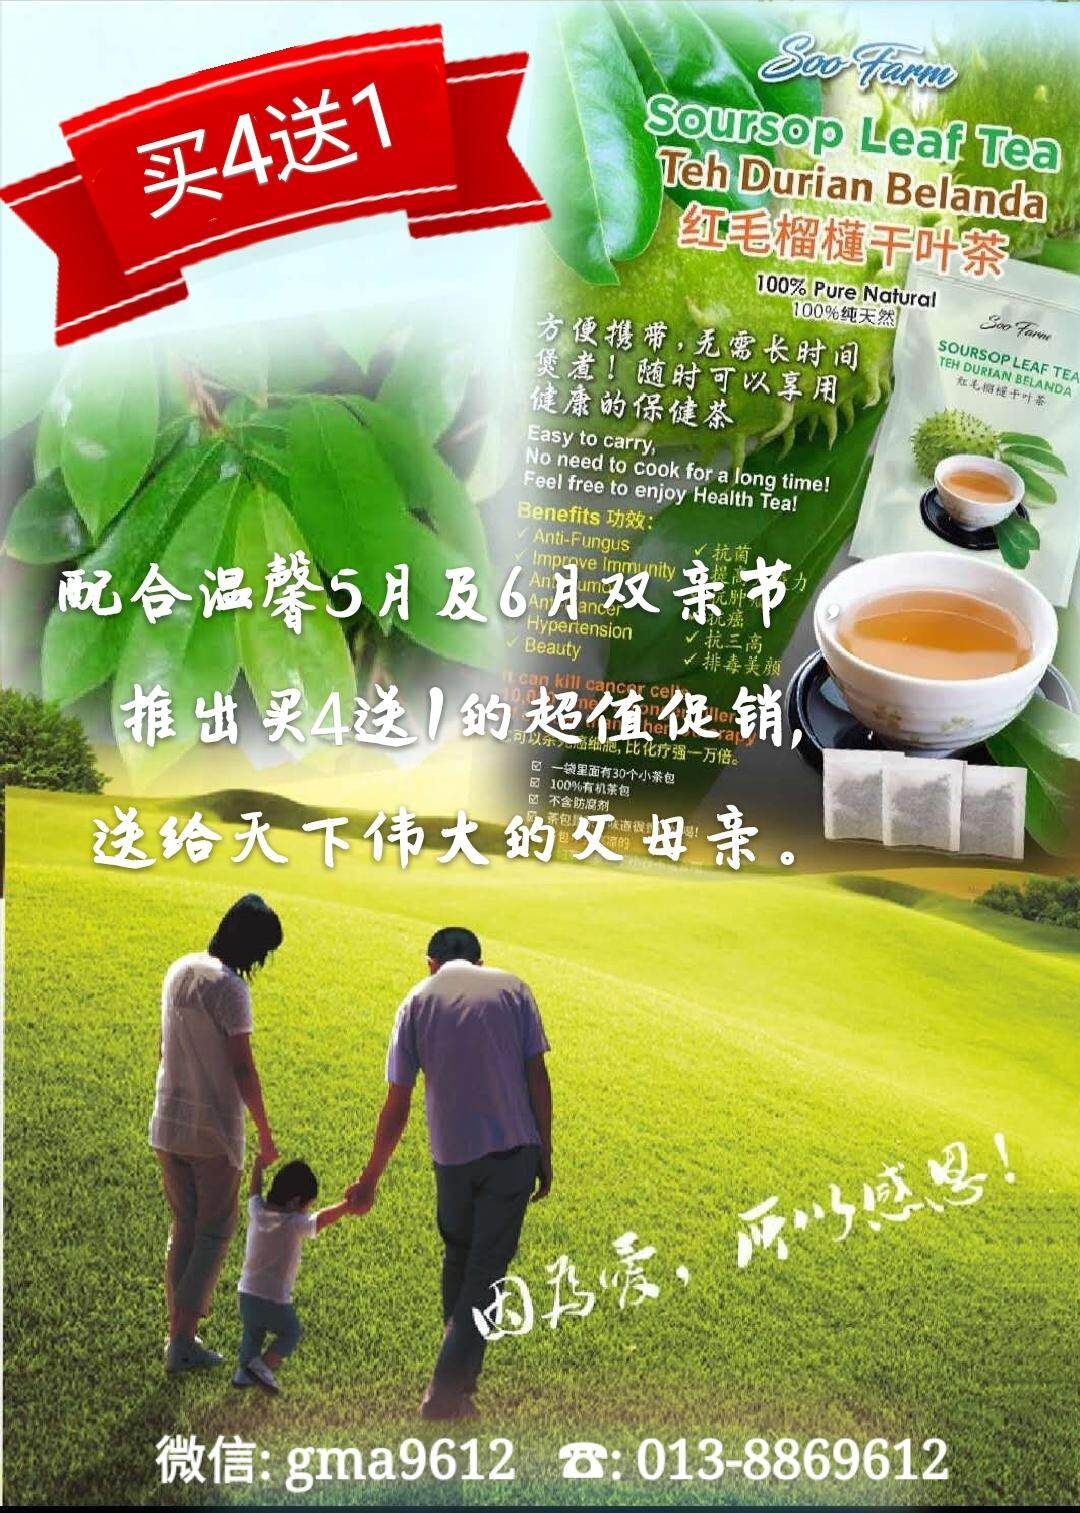 Soursop Leaf Tea For Cancer And Other Illness By Sarawak Products.